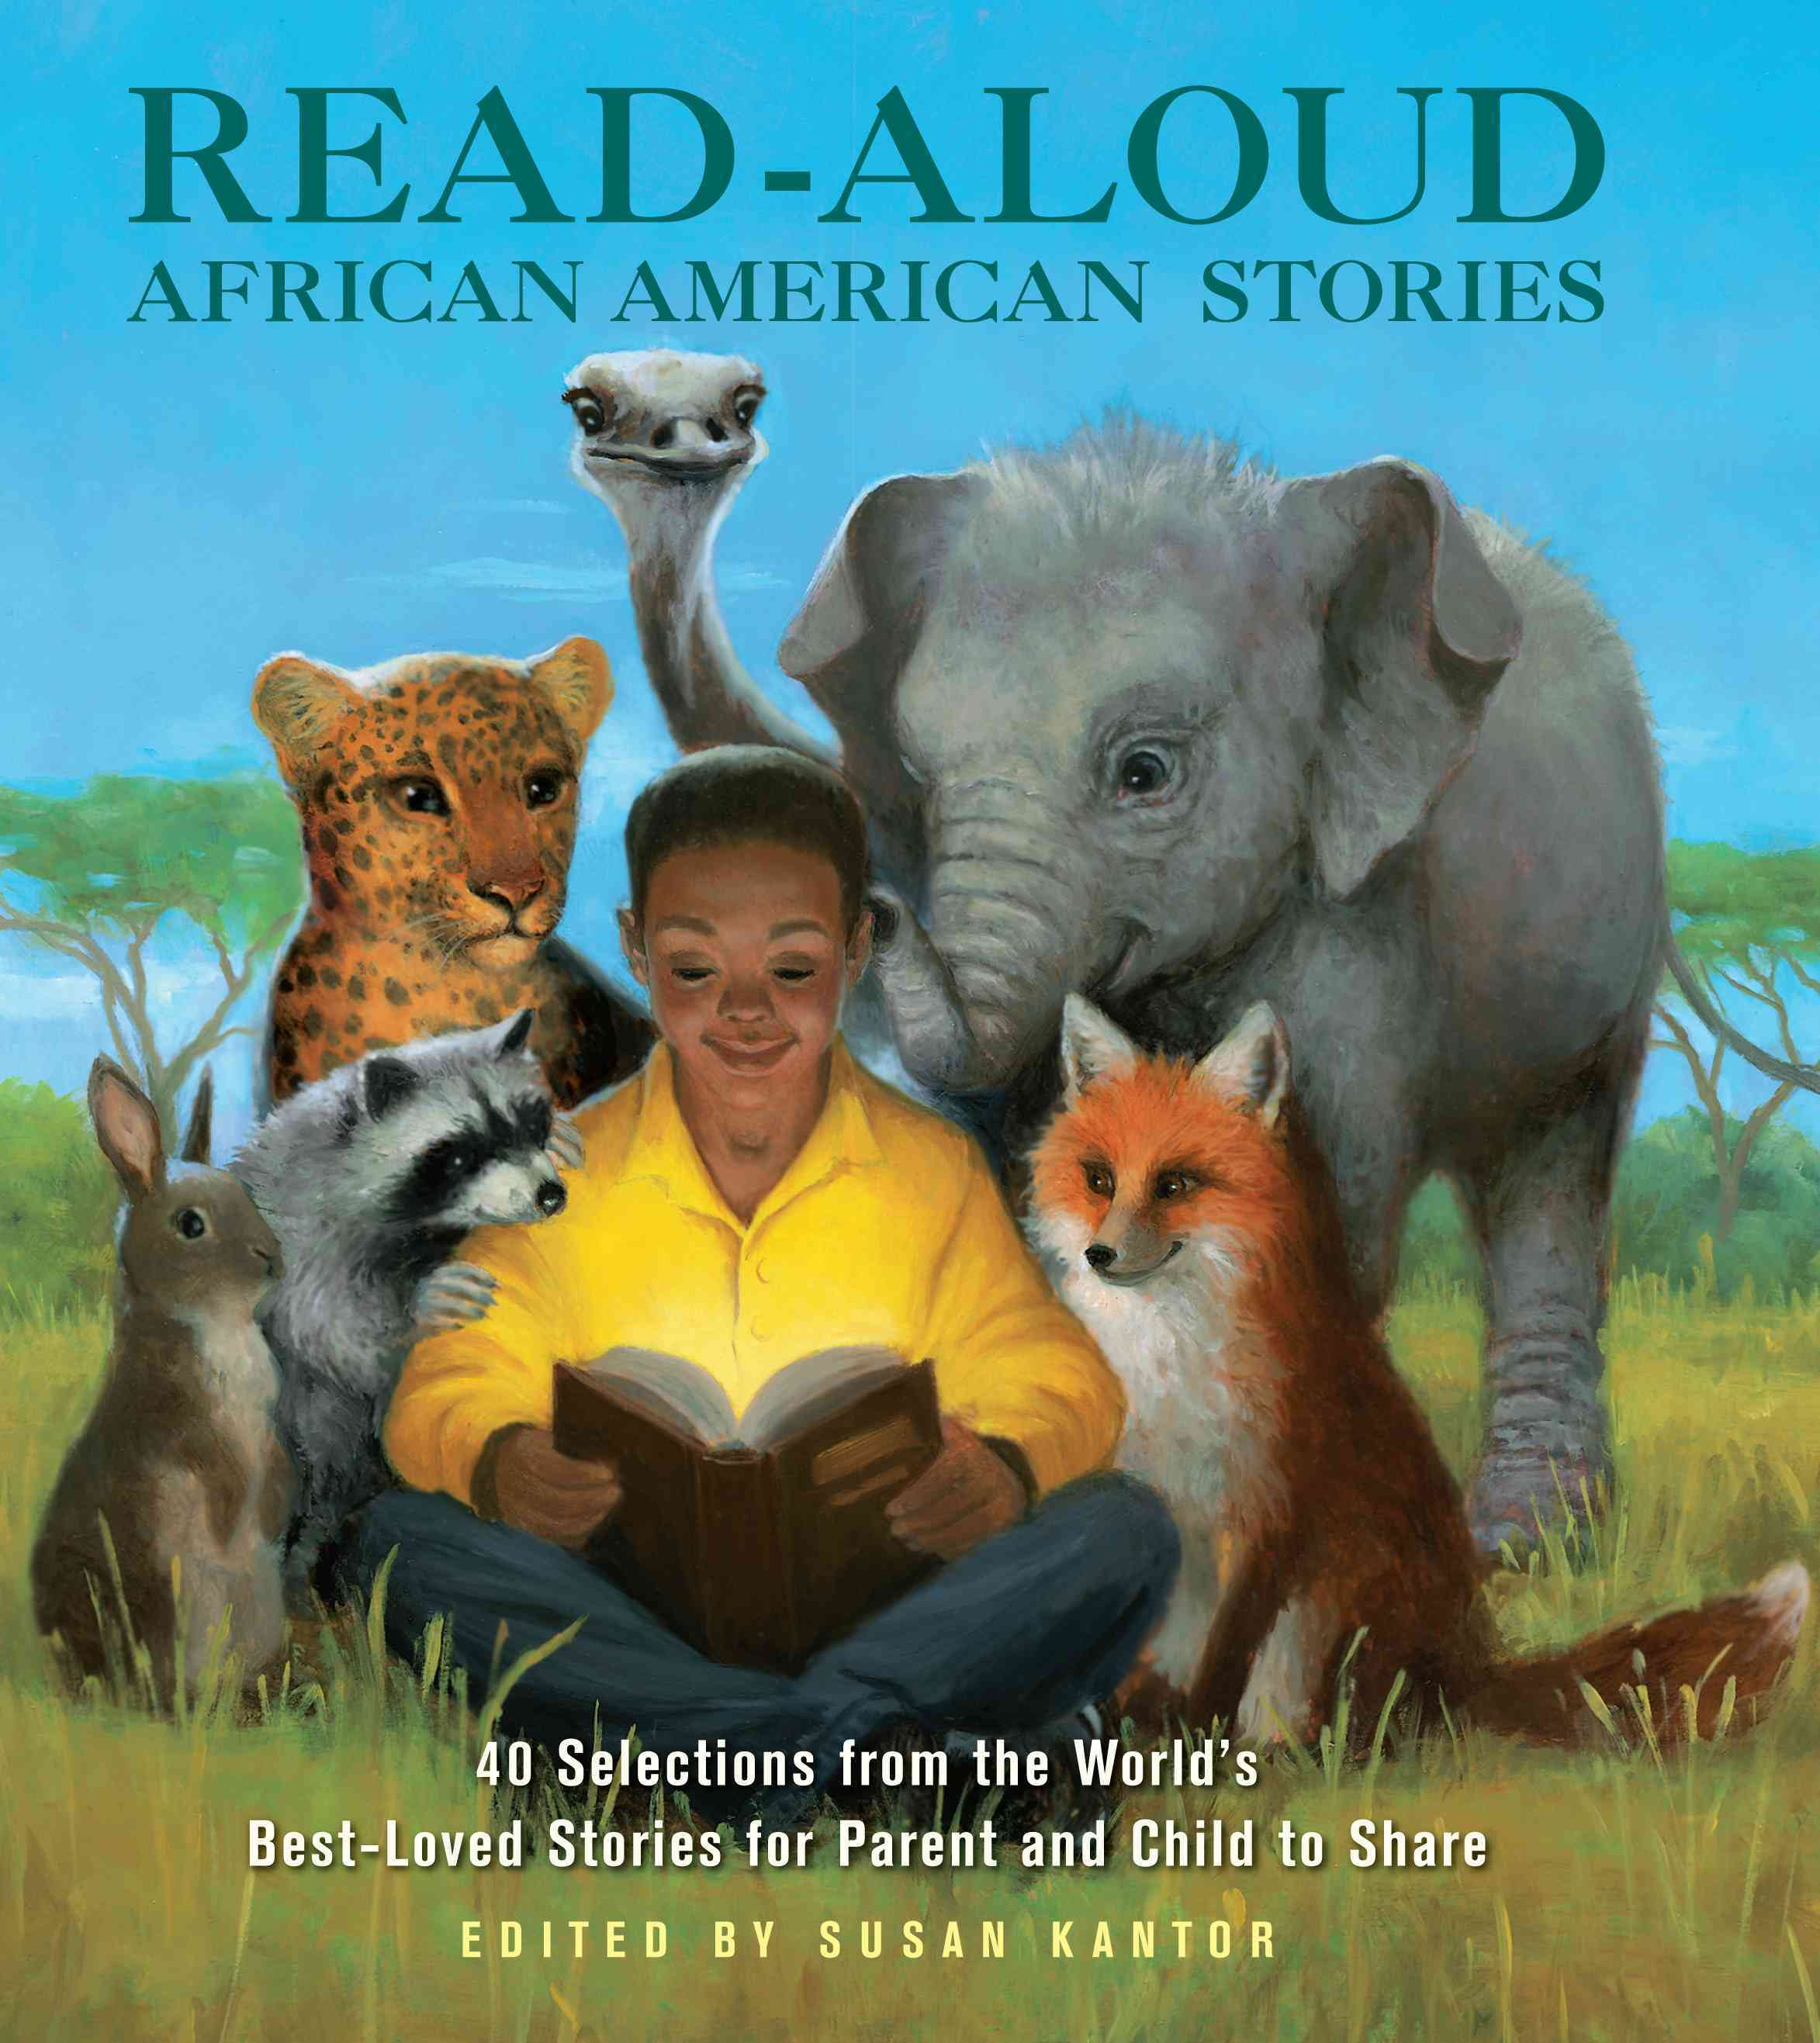 Read Aloud African American Stories: 40 Selections from the World's Best Loved Stories for Parent and Child to Share (Hardcover)